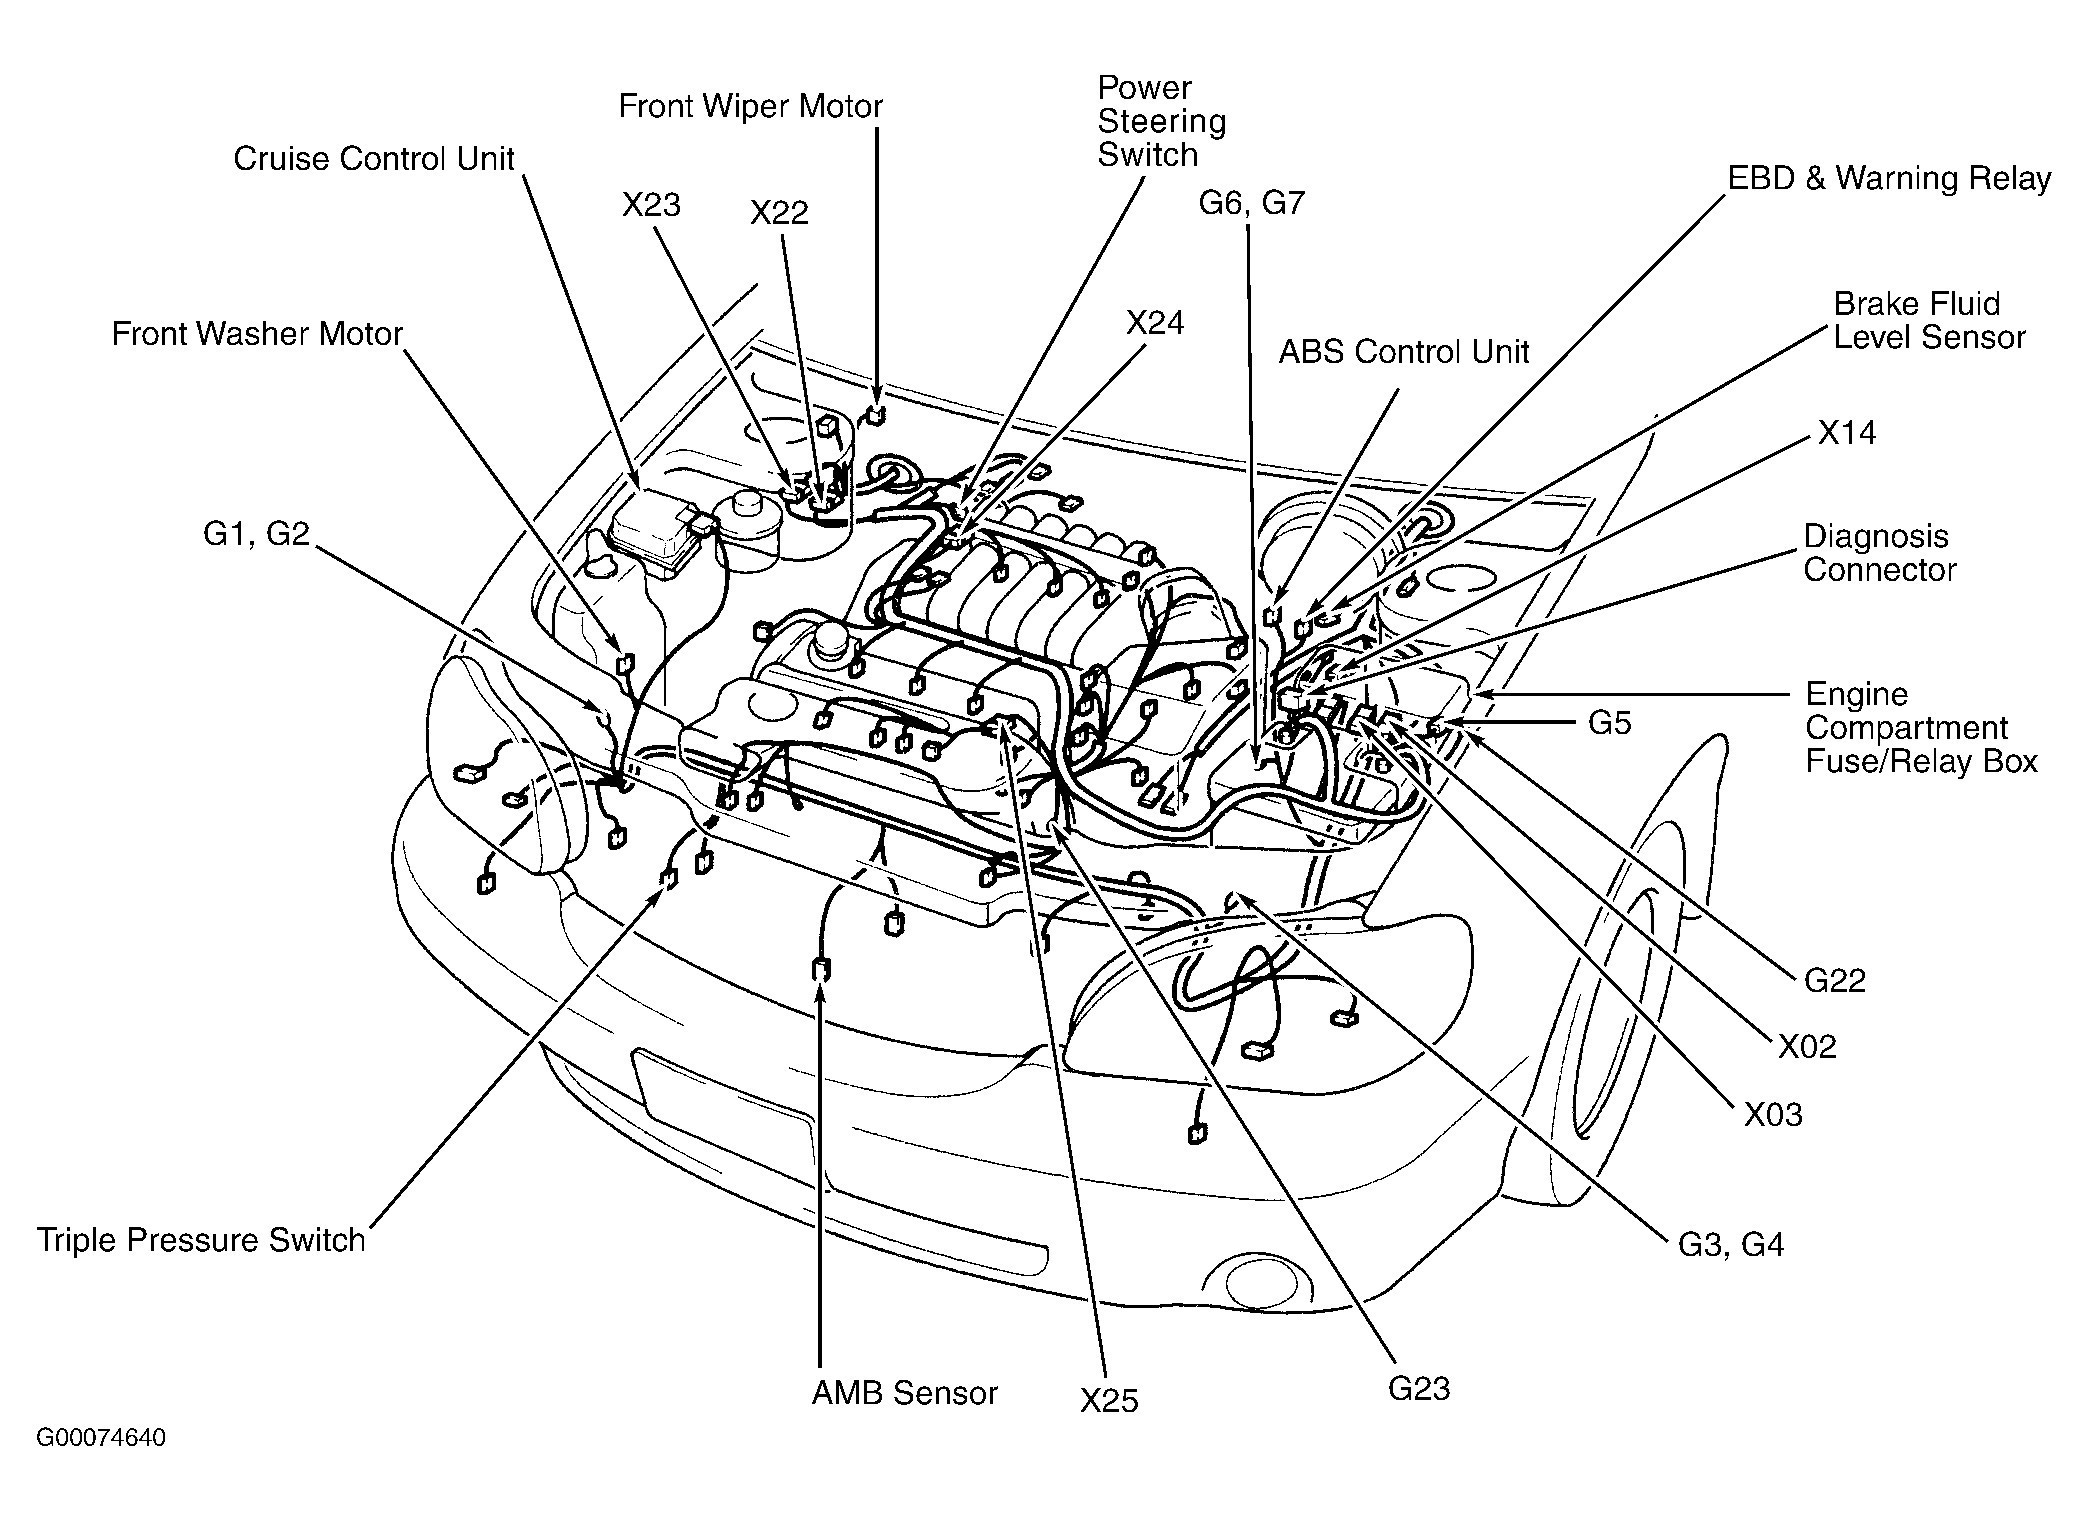 2004 Kia Sorento Engine Diagram Wiring Diagram Report1 Report1 Maceratadoc It